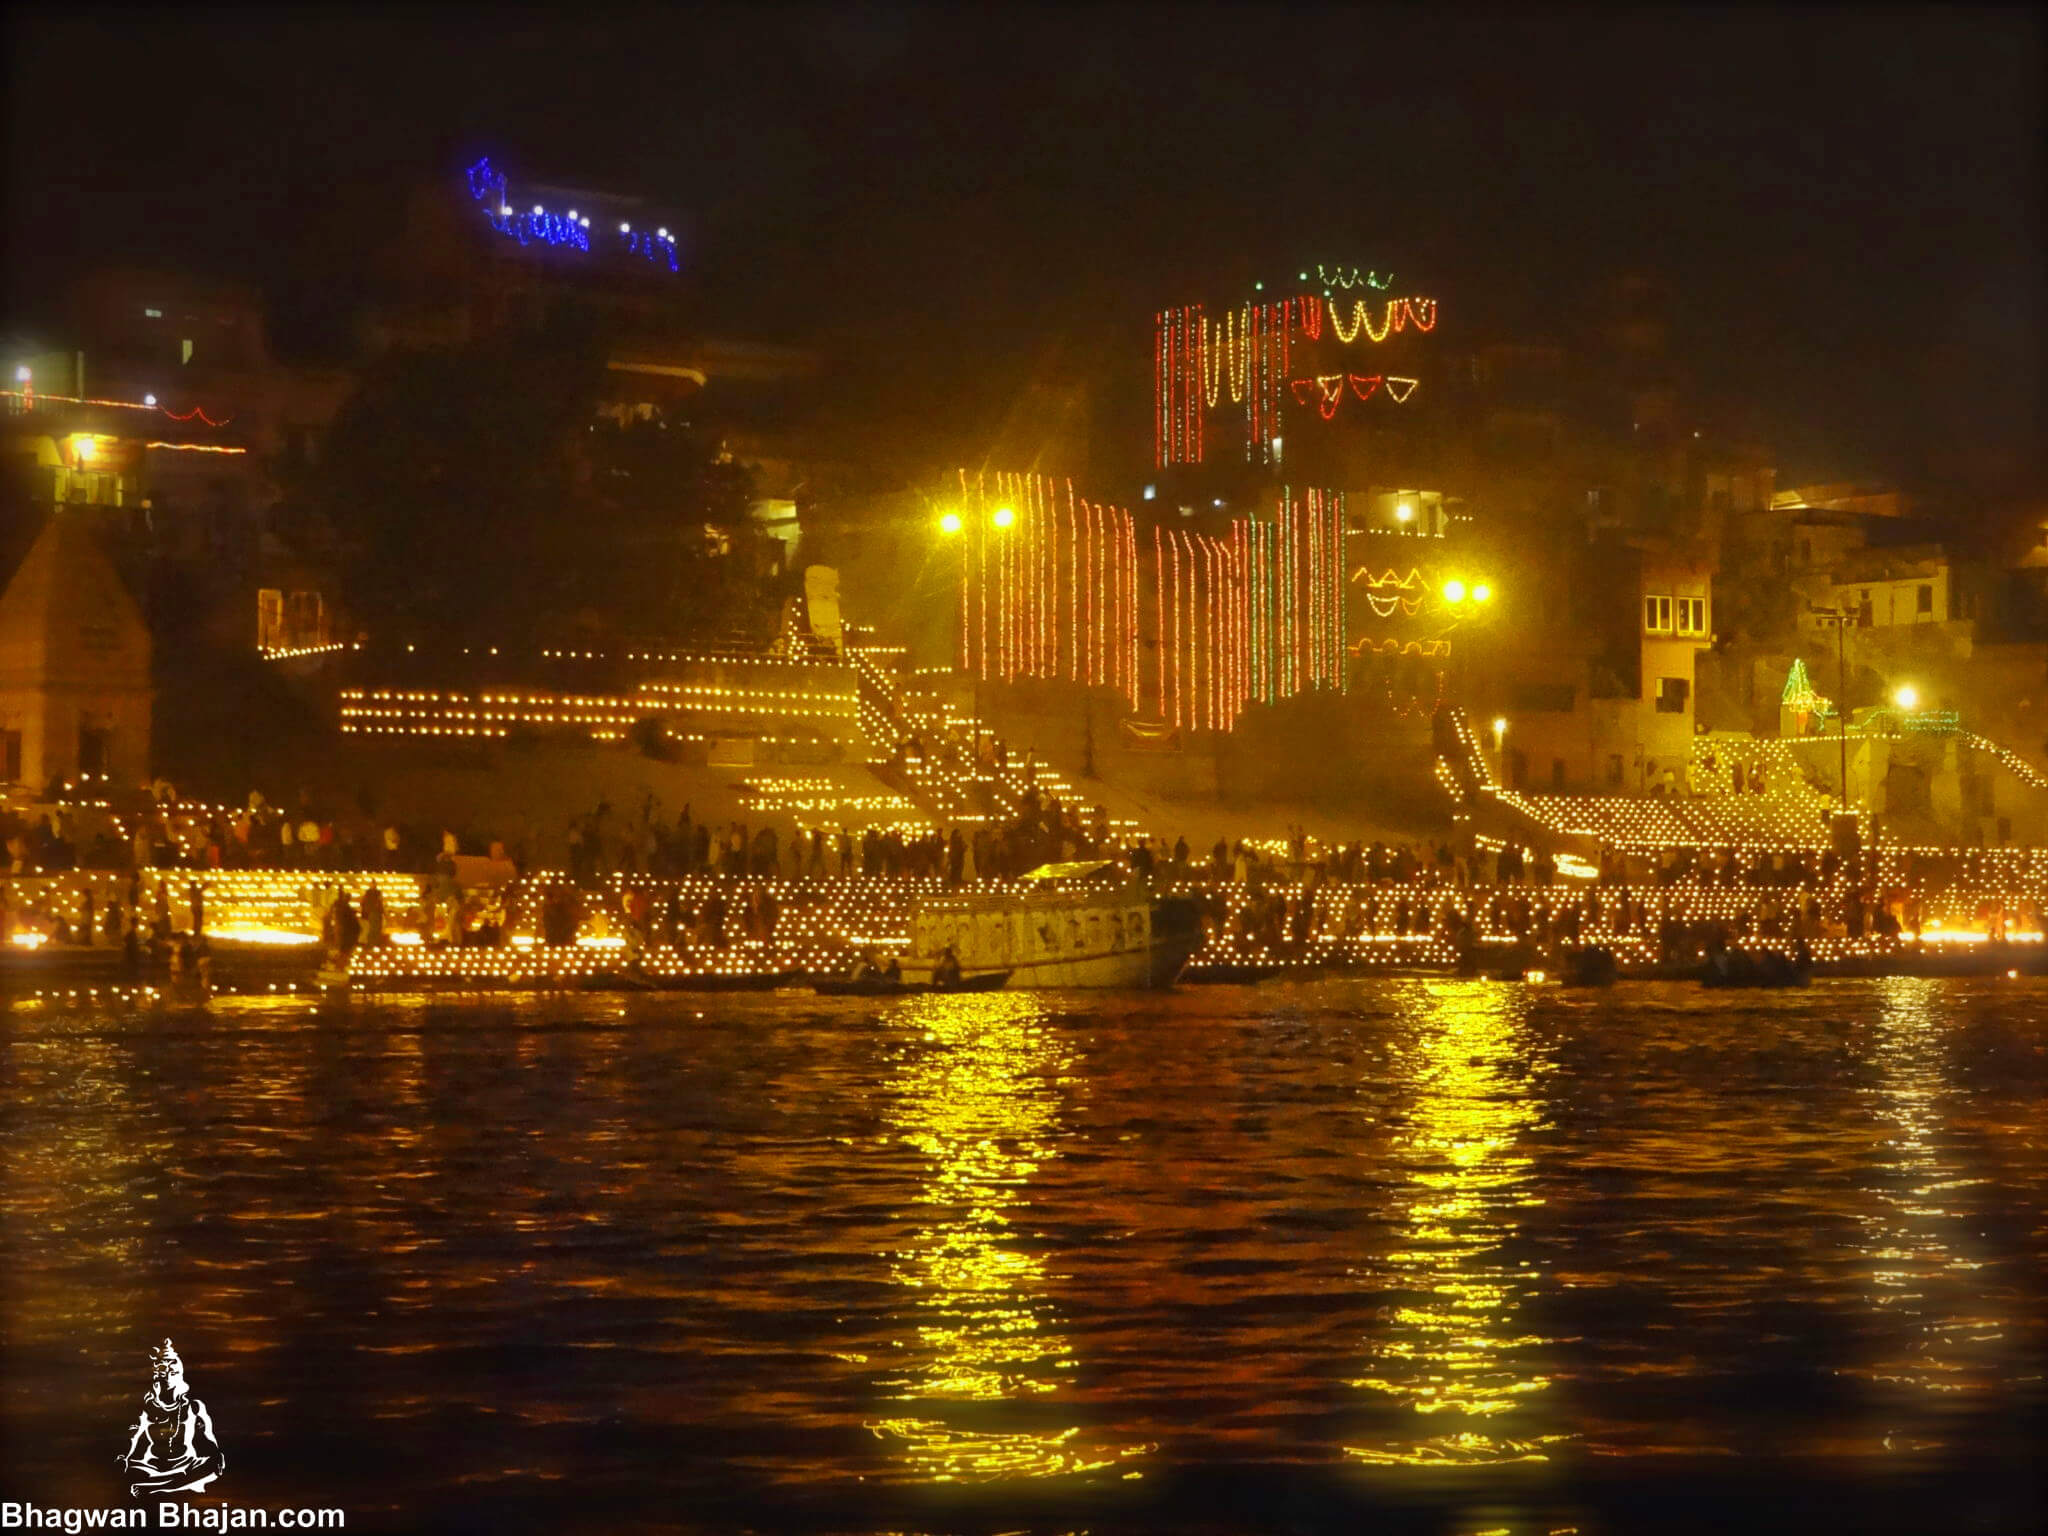 best wishes to you for a dev deepawali banaras ghat 2019